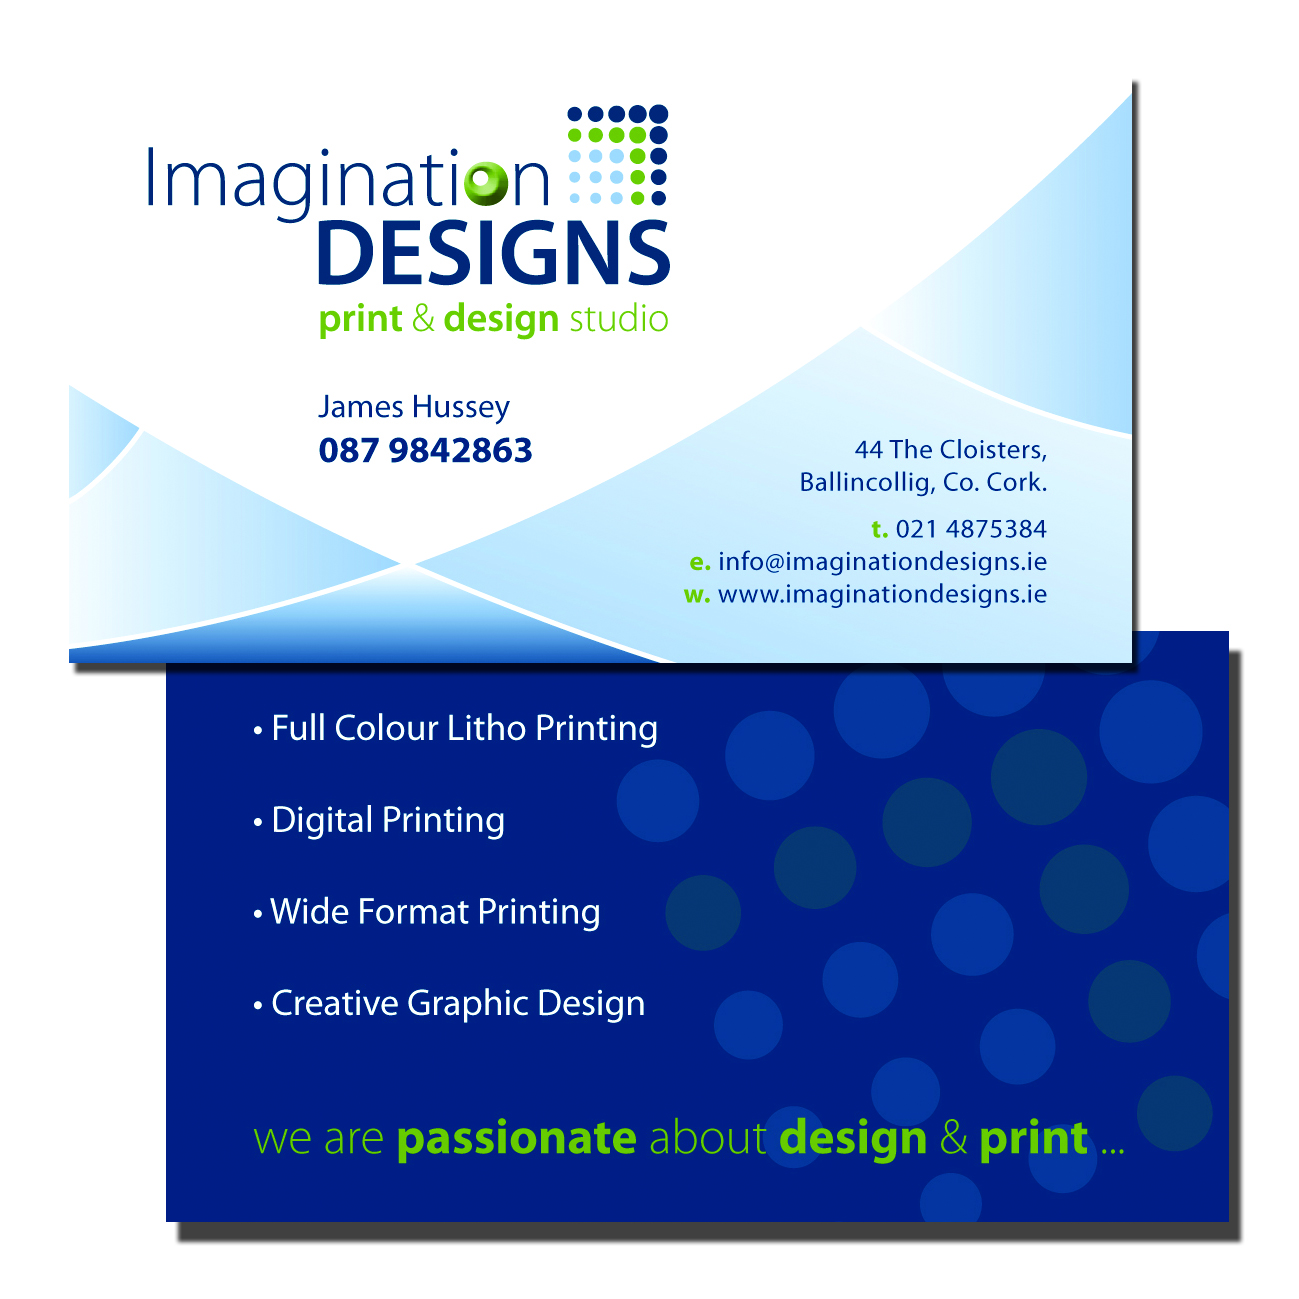 Imagination designs cork printers image reheart